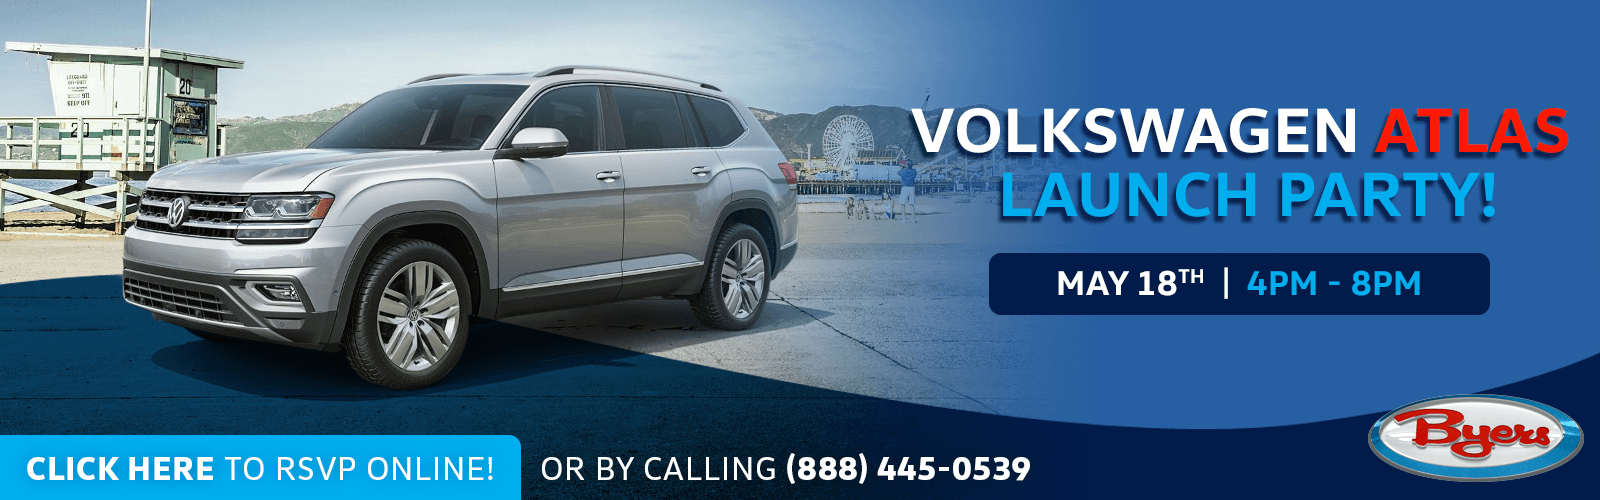 Click to join us for the new VW Atlas launch event at Byers Volkswagen